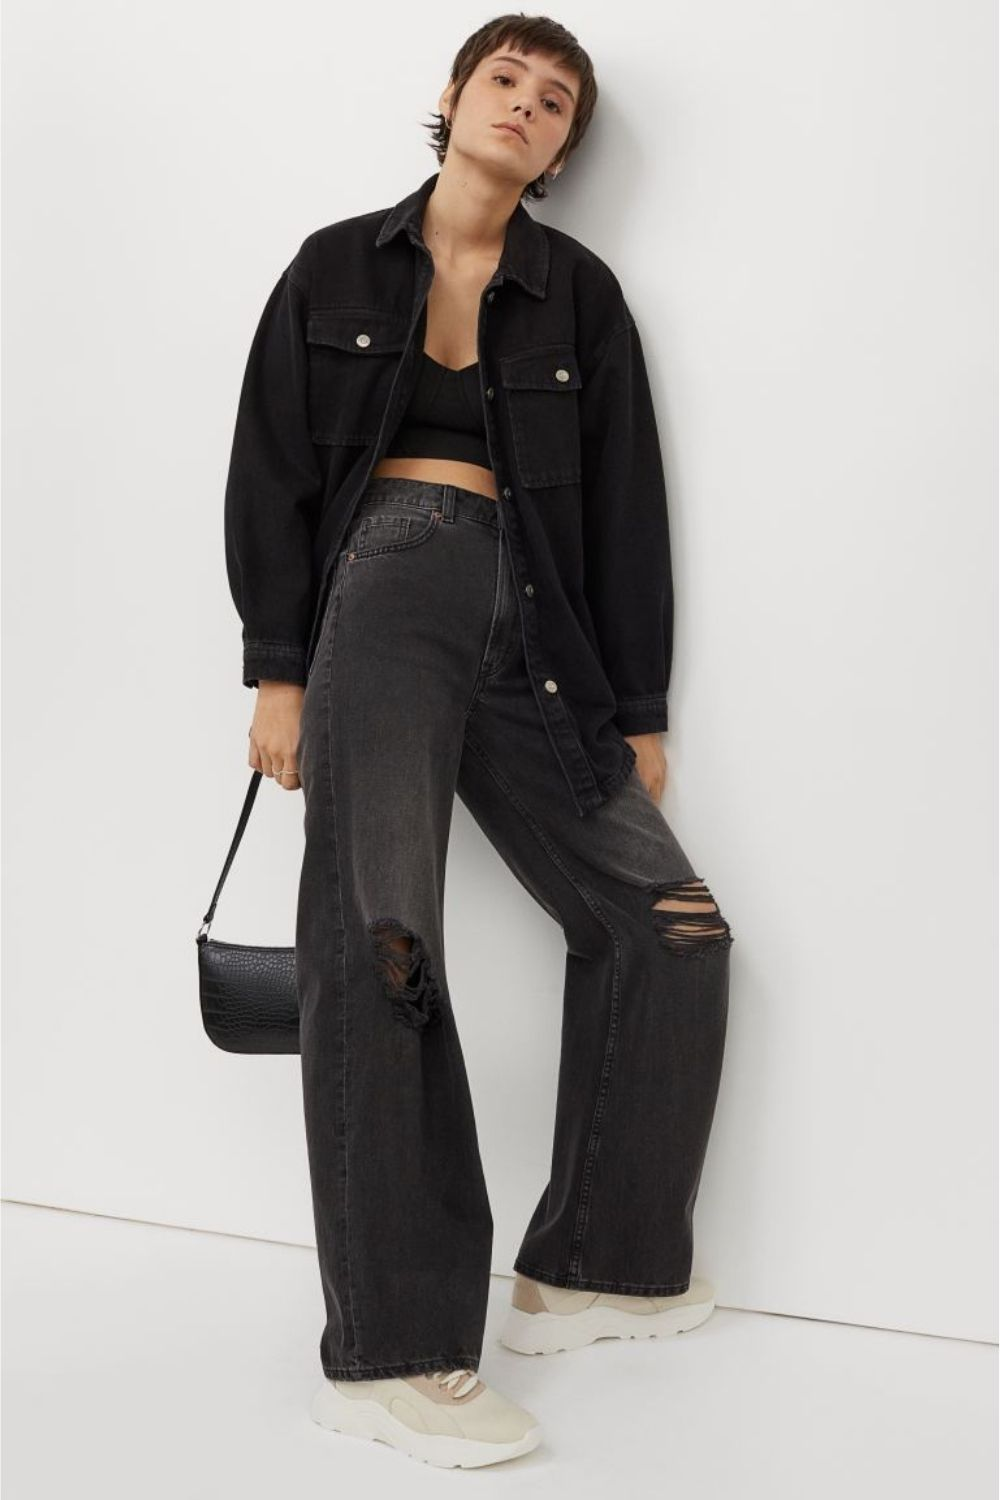 black shacket from H&M